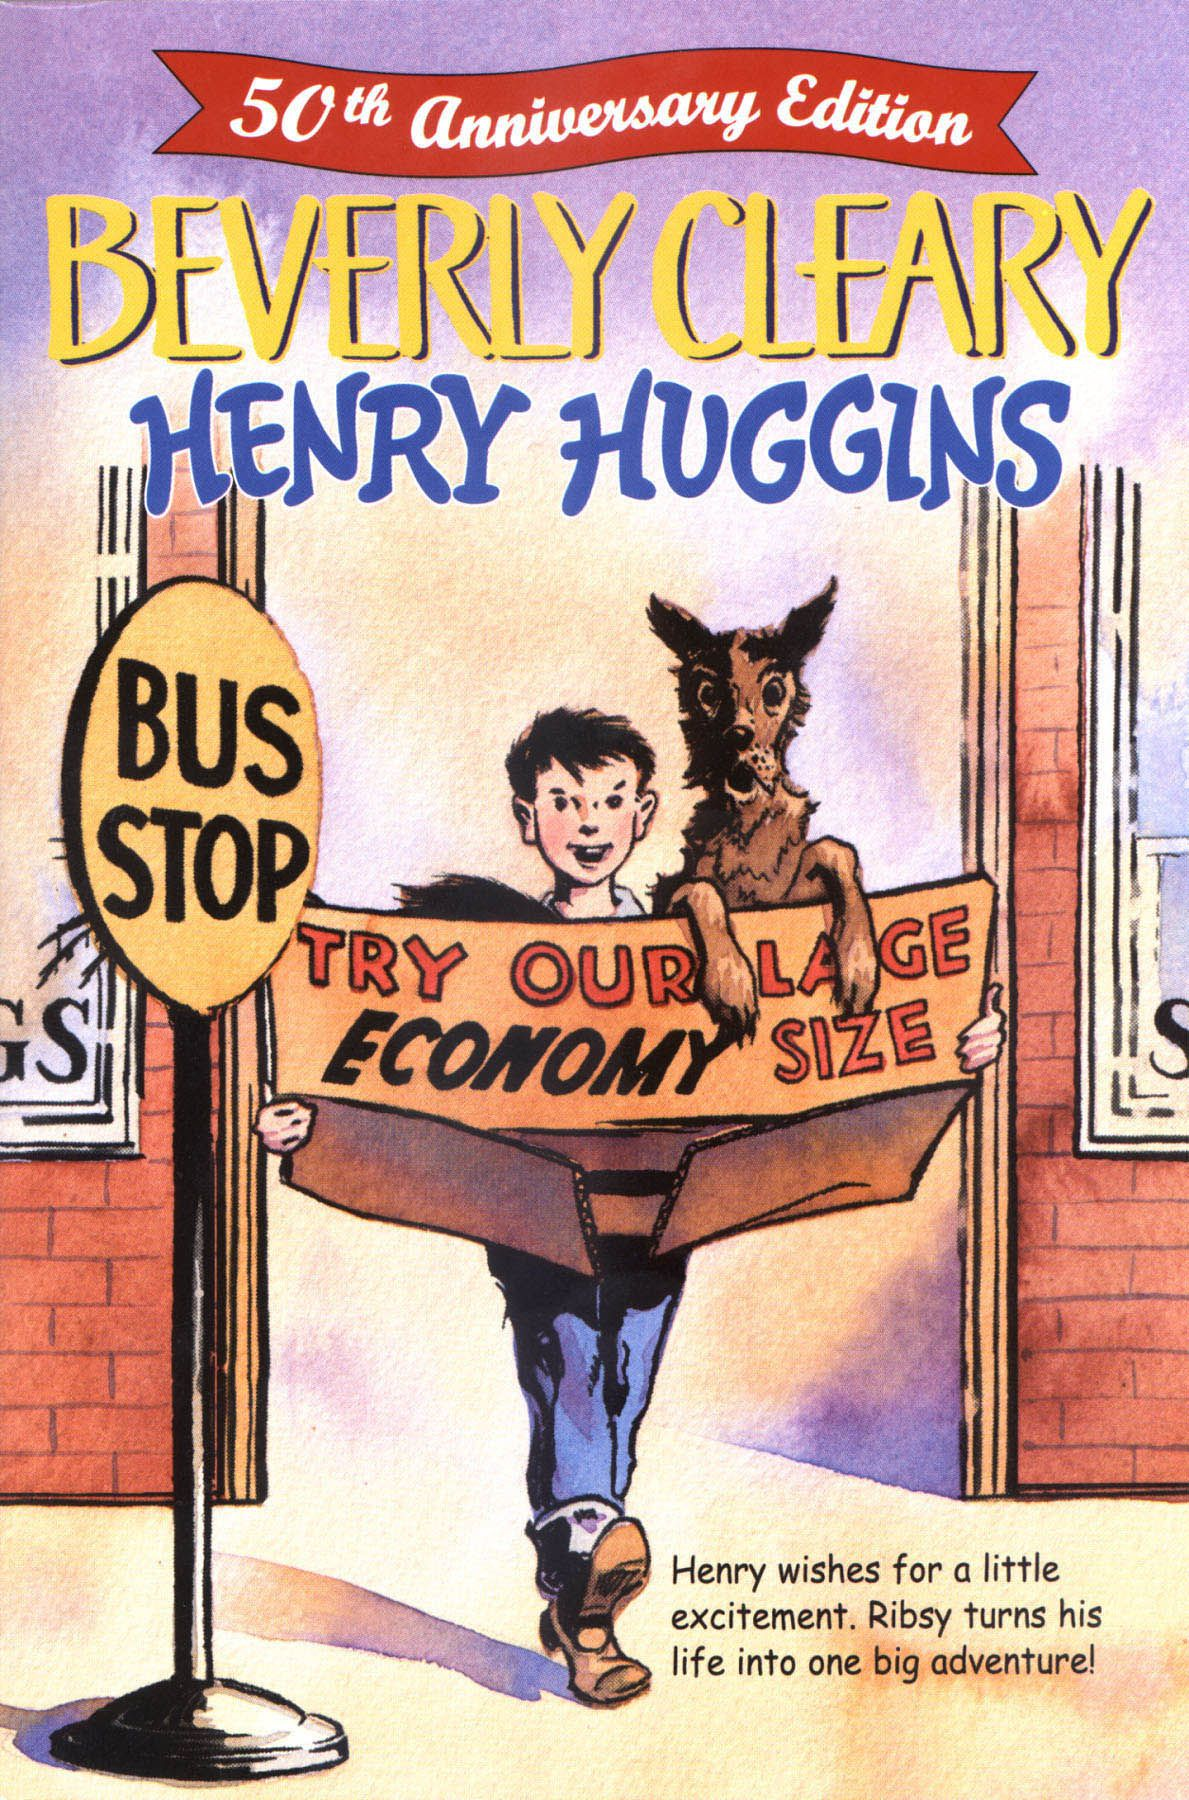 """Beverly Cleary didn't start writing books until her early 30s when she wrote """"Henry Huggins,"""" published in 1950."""